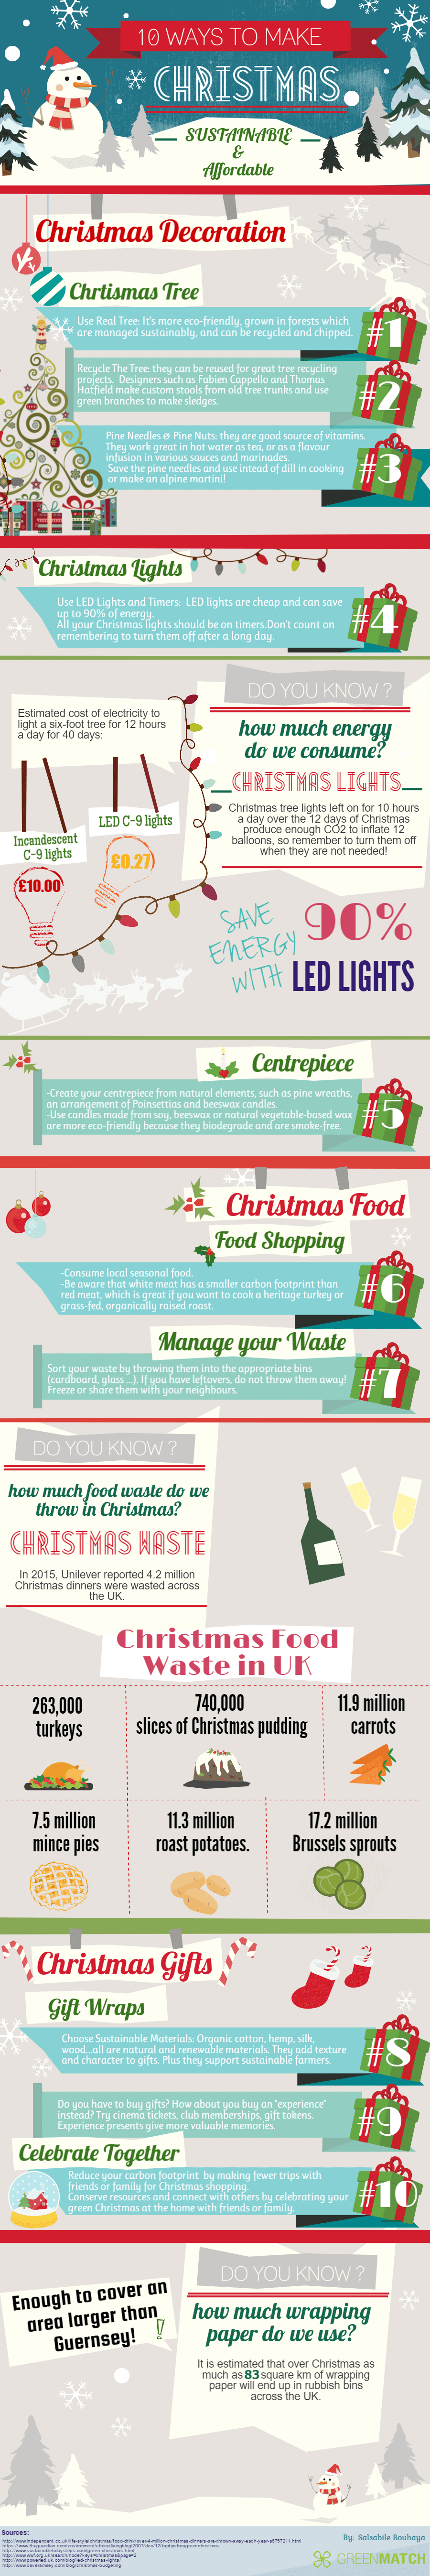 10 Ways to Make Christmas Sustainable Infographic